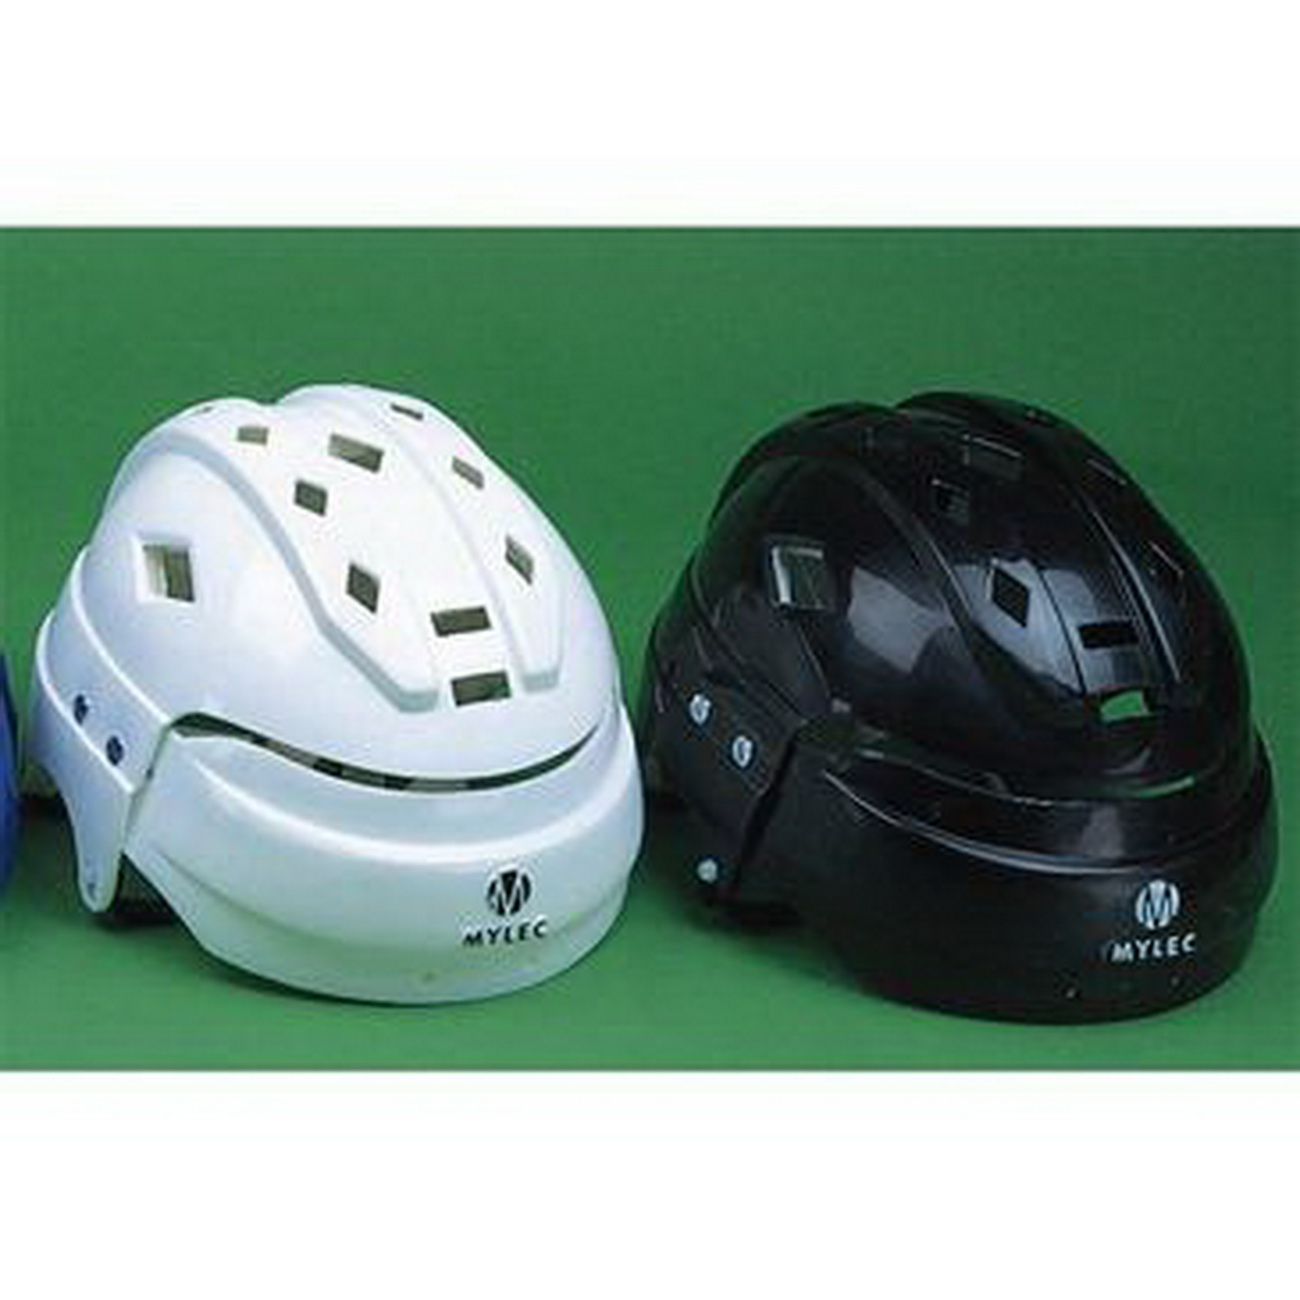 Hockey Helmet Jr. Black